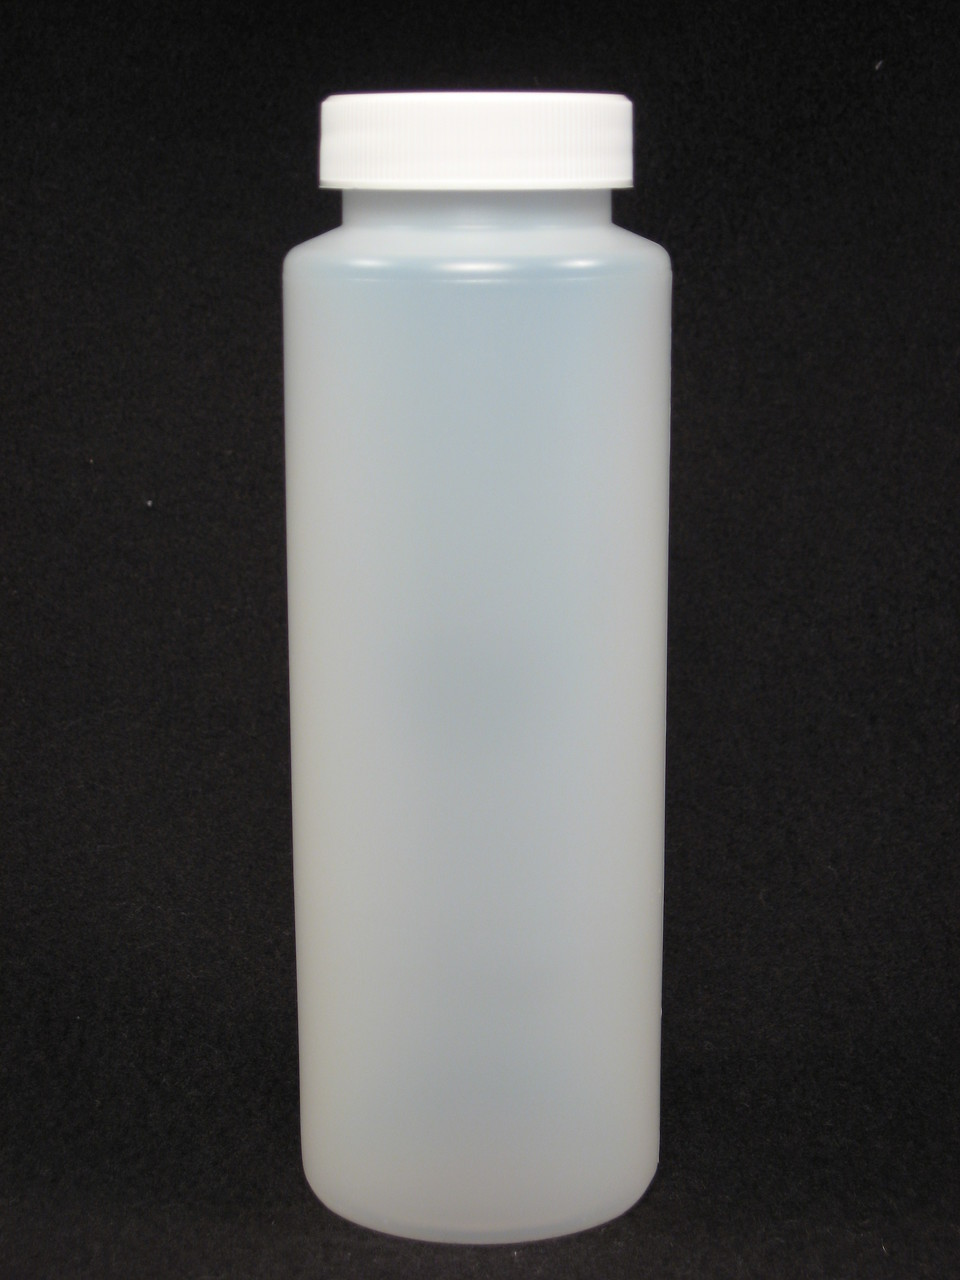 12 oz. Cylinder honey bottles - case of 350 with white screw top lids